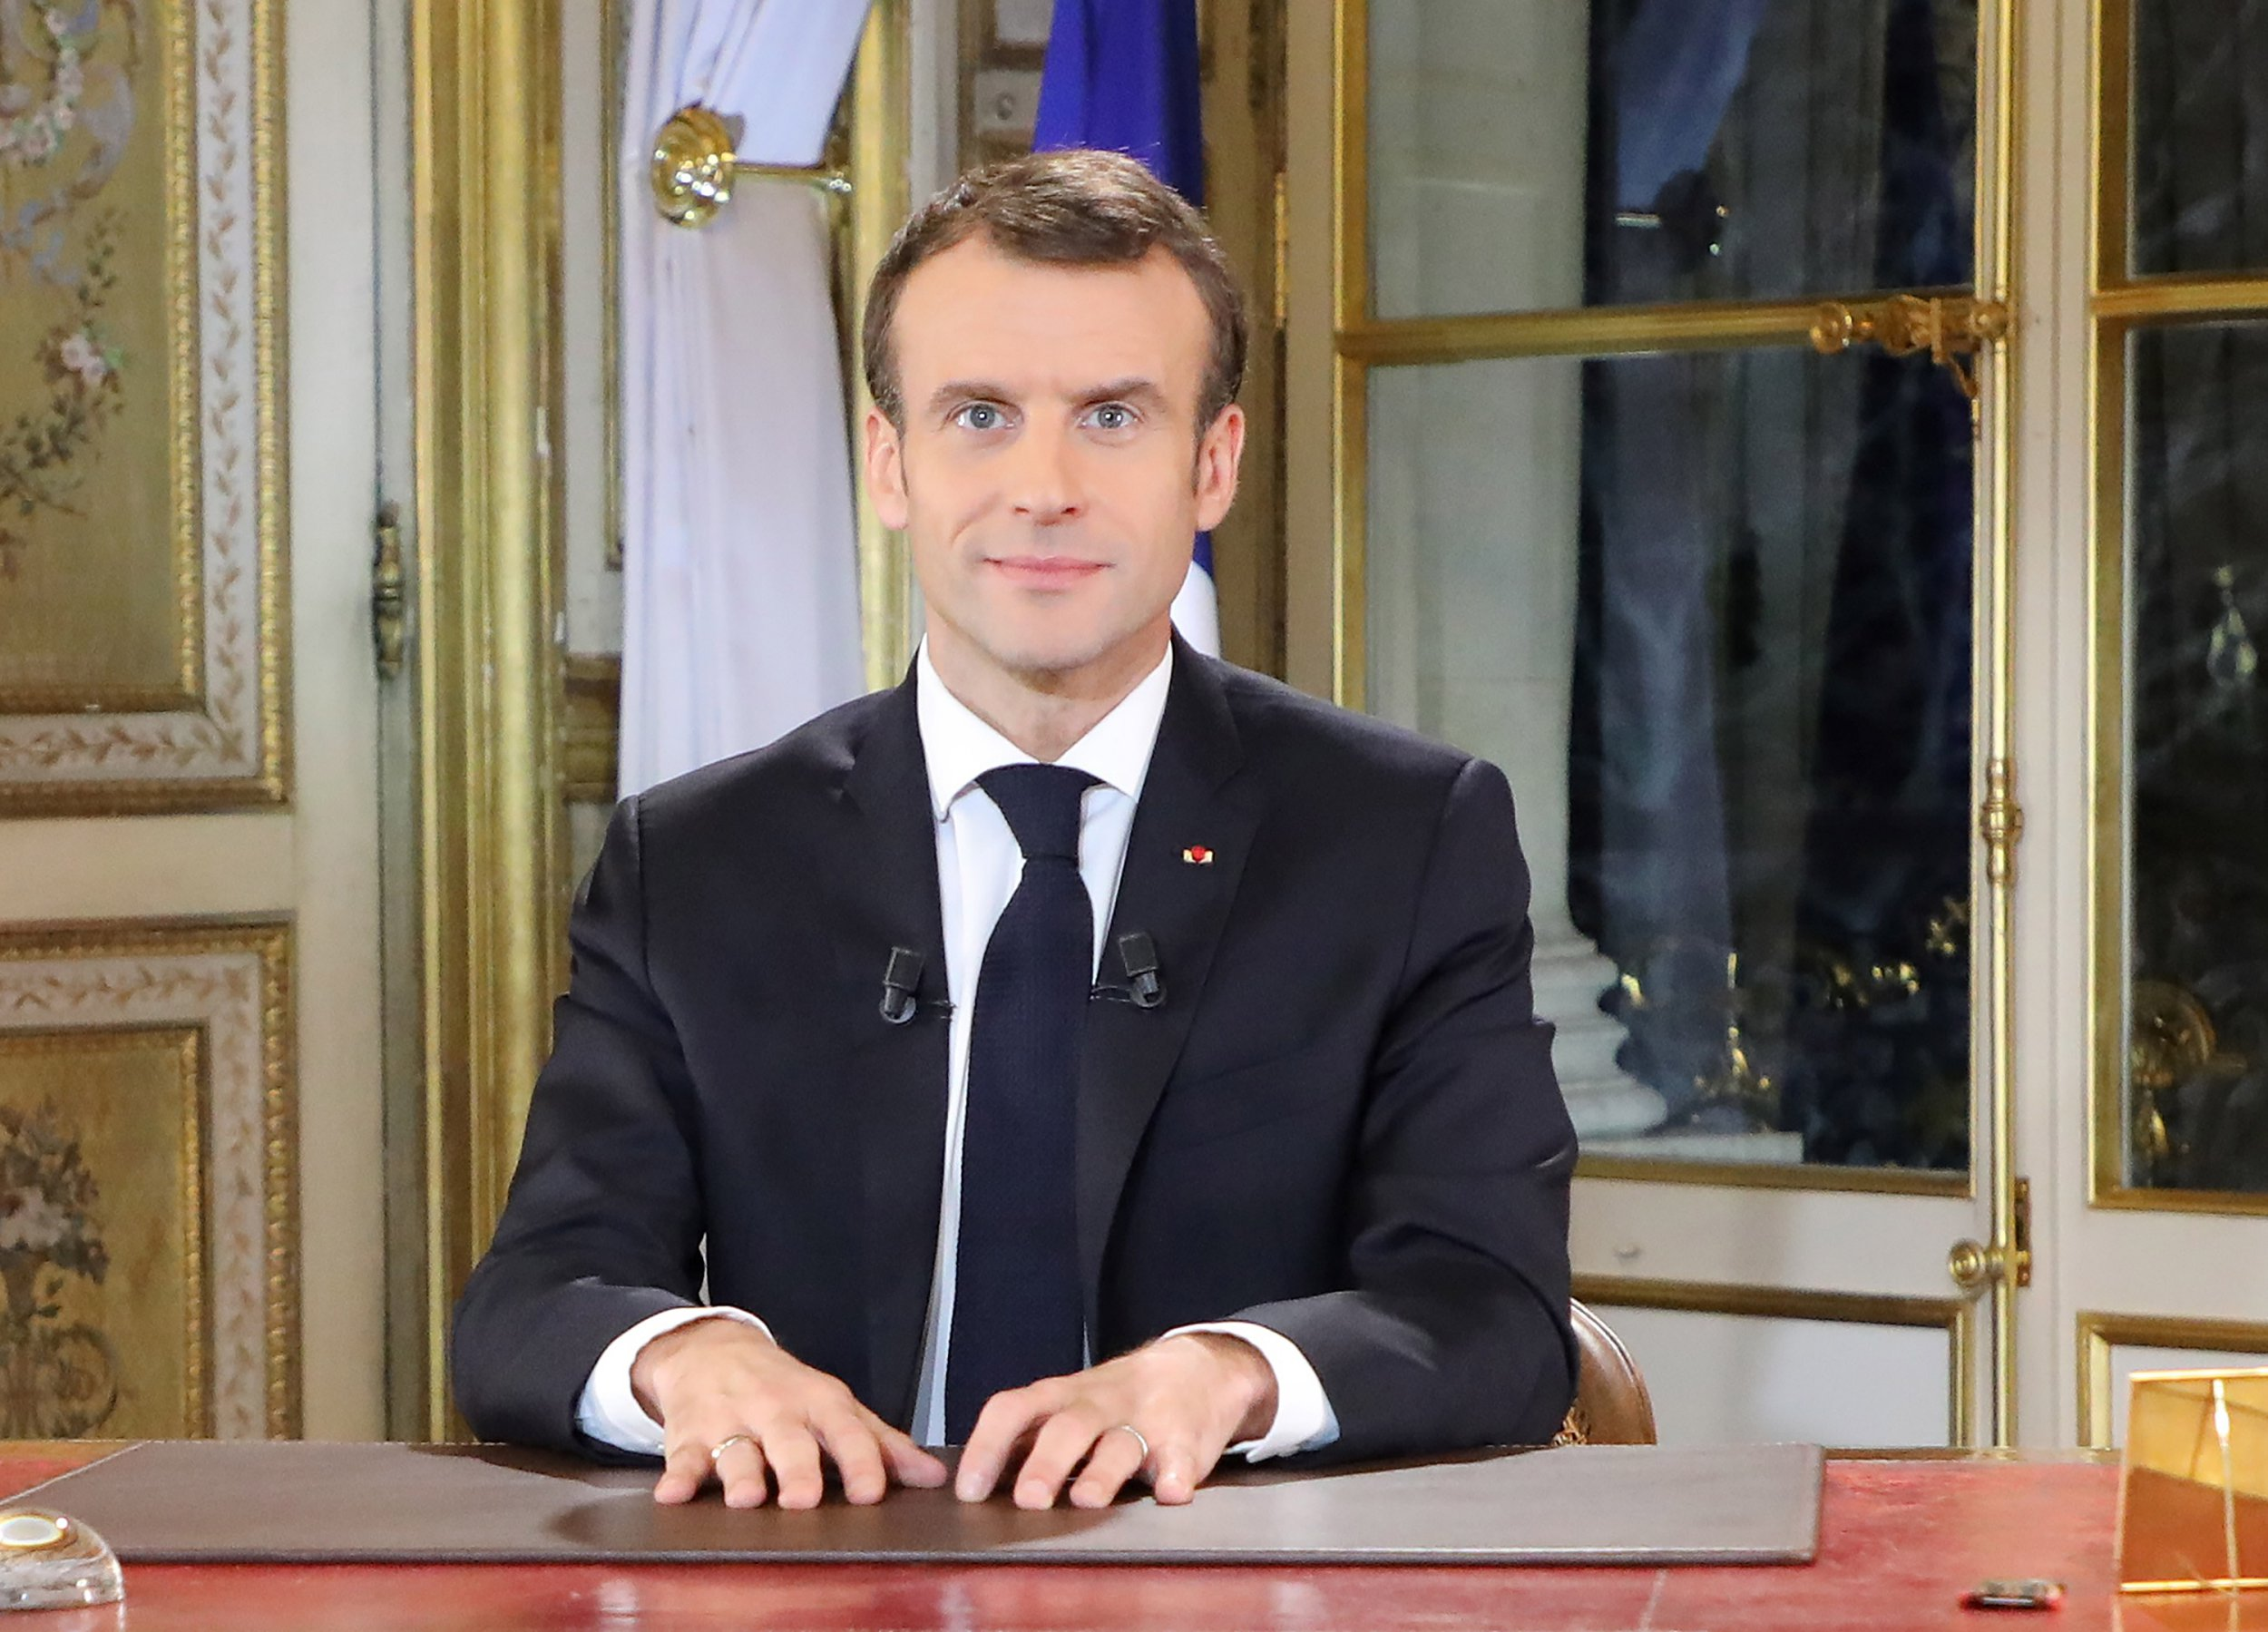 epa07222303 French President Emmanuel Macron speaks during a special address to the nation, his first public comments after four weeks of nationwide 'yellow vest' (gilet jaune) protests, at the Elysee Palace in Paris, France, 10 December 2018. Violent mass protests have been sweeping over Paris and parts of the country for more than three weeks, and riots in the downtown area surrounding the Champs Elysees and the Arc de Triomphe were ongoing between riot gear-equipped police and thousands of protesters, known as the 'Yellow Vests'. EPA/LUDOVIC MARIN / POOL MAXPPP OUT